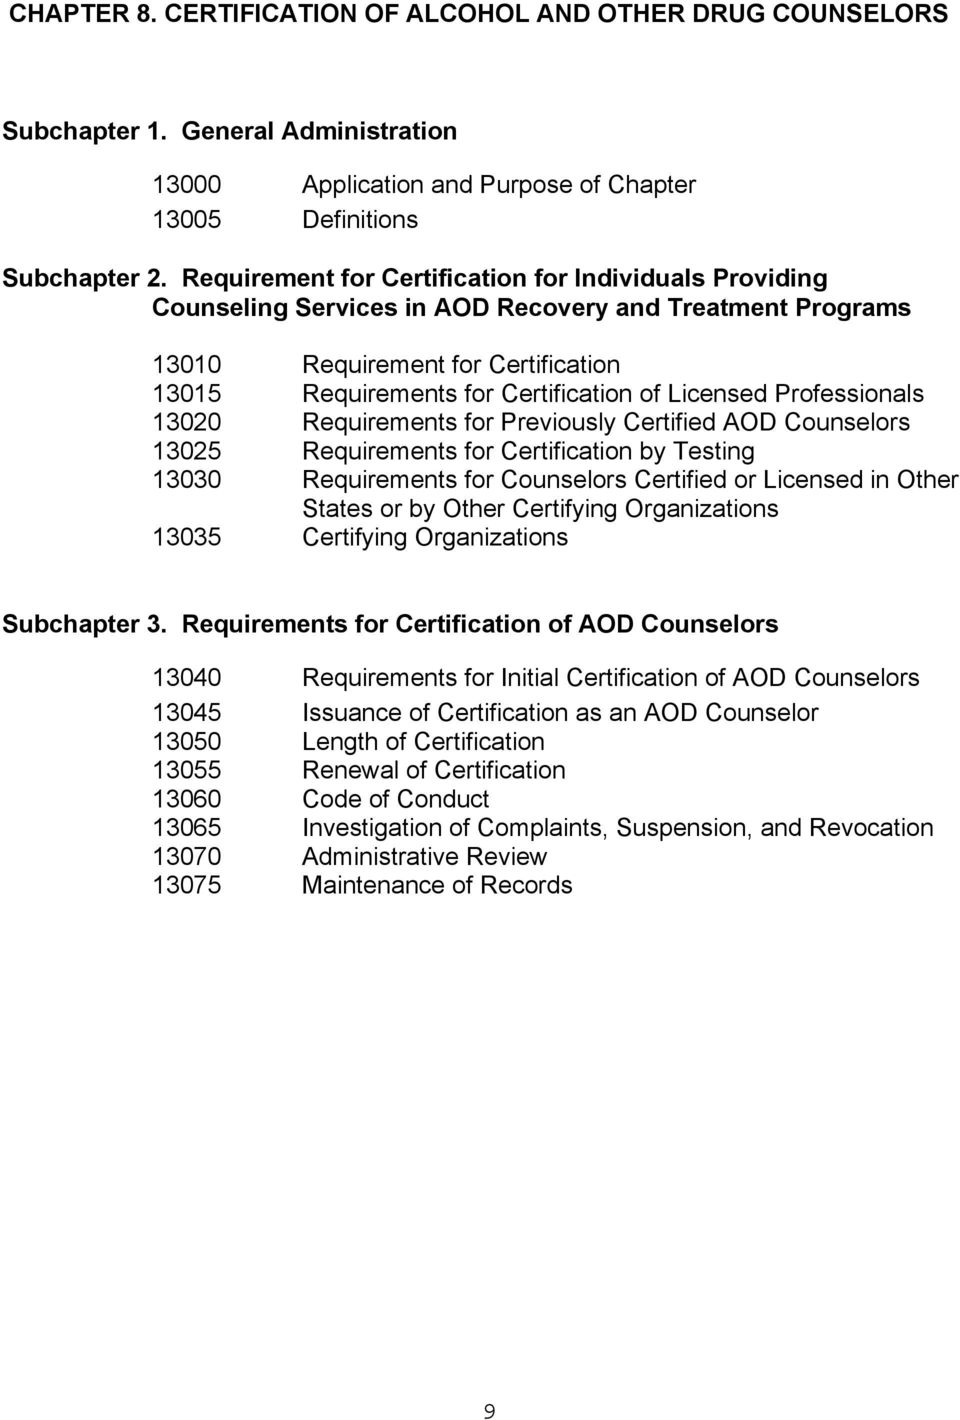 Professionals 13020 Requirements for Previously Certified AOD Counselors 13025 Requirements for Certification by Testing 13030 Requirements for Counselors Certified or Licensed in Other States or by